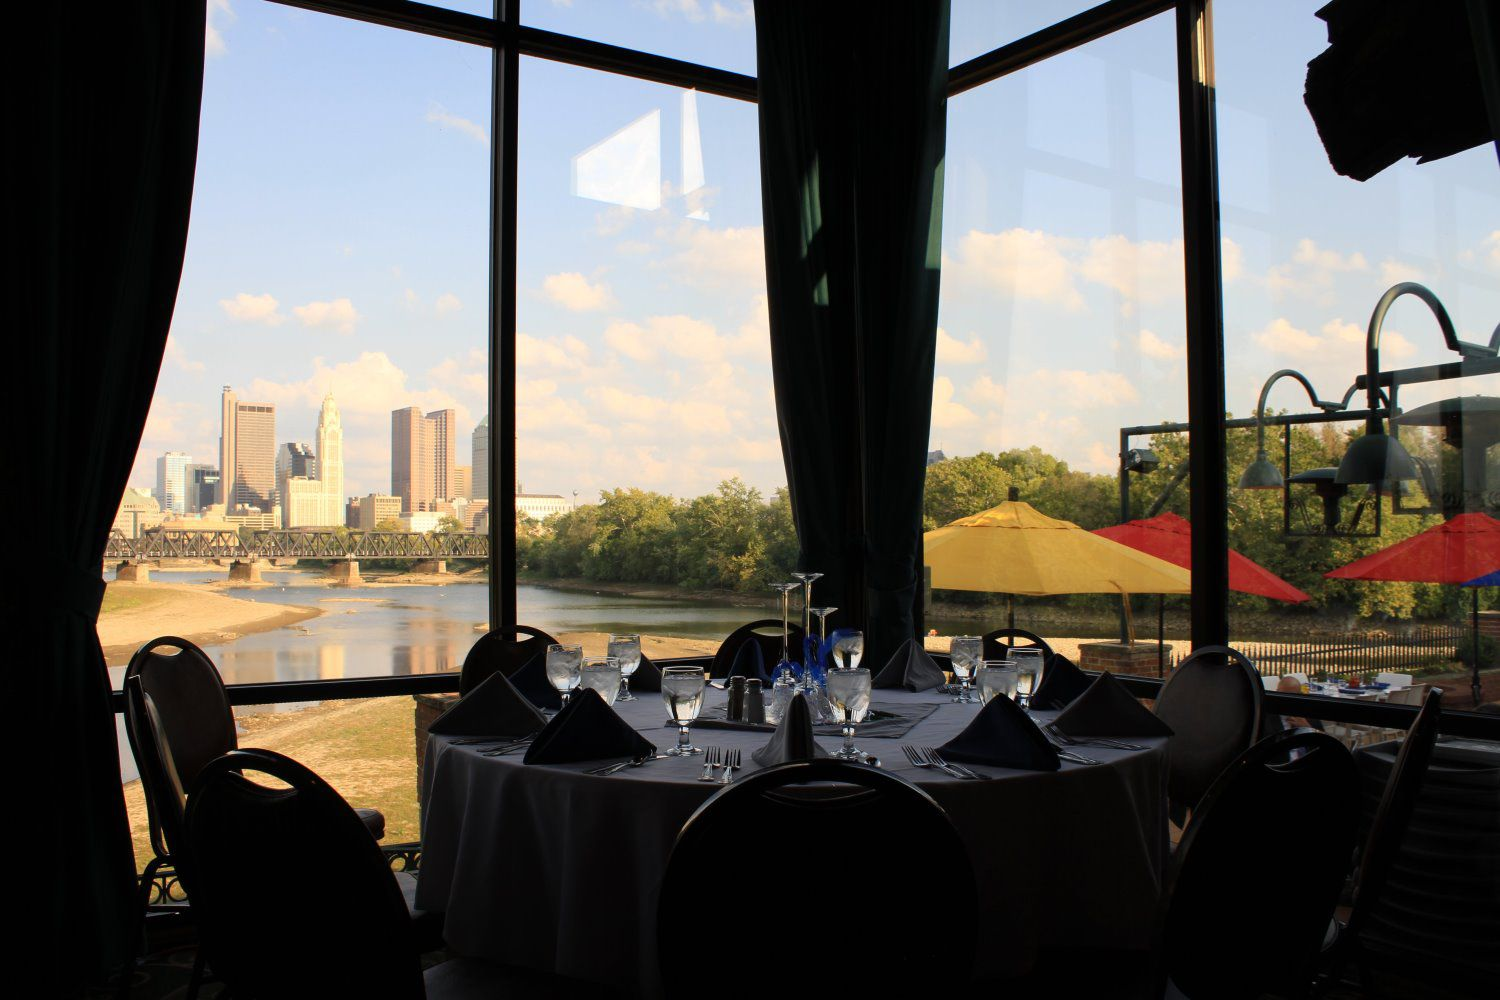 home the boat house - Restaurants Open On Christmas Day Columbus Ohio